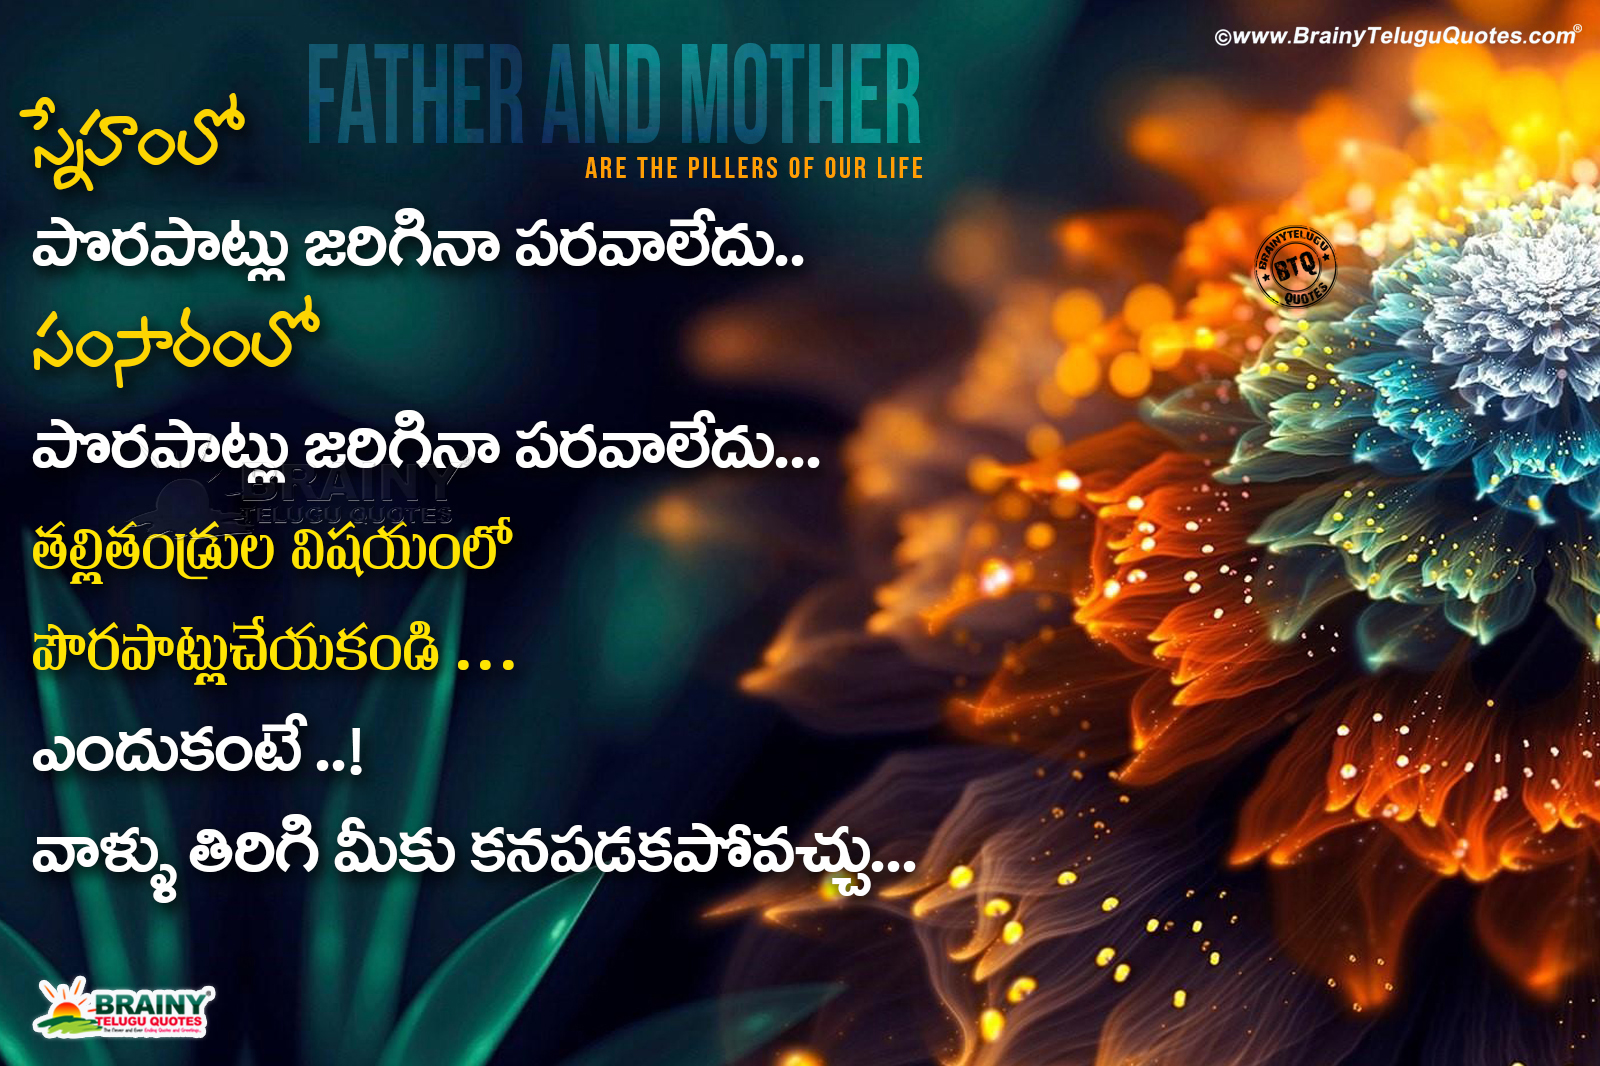 famous words about mother and father, teugu father and mother quotes, nice words bout amma and naanna in telugu